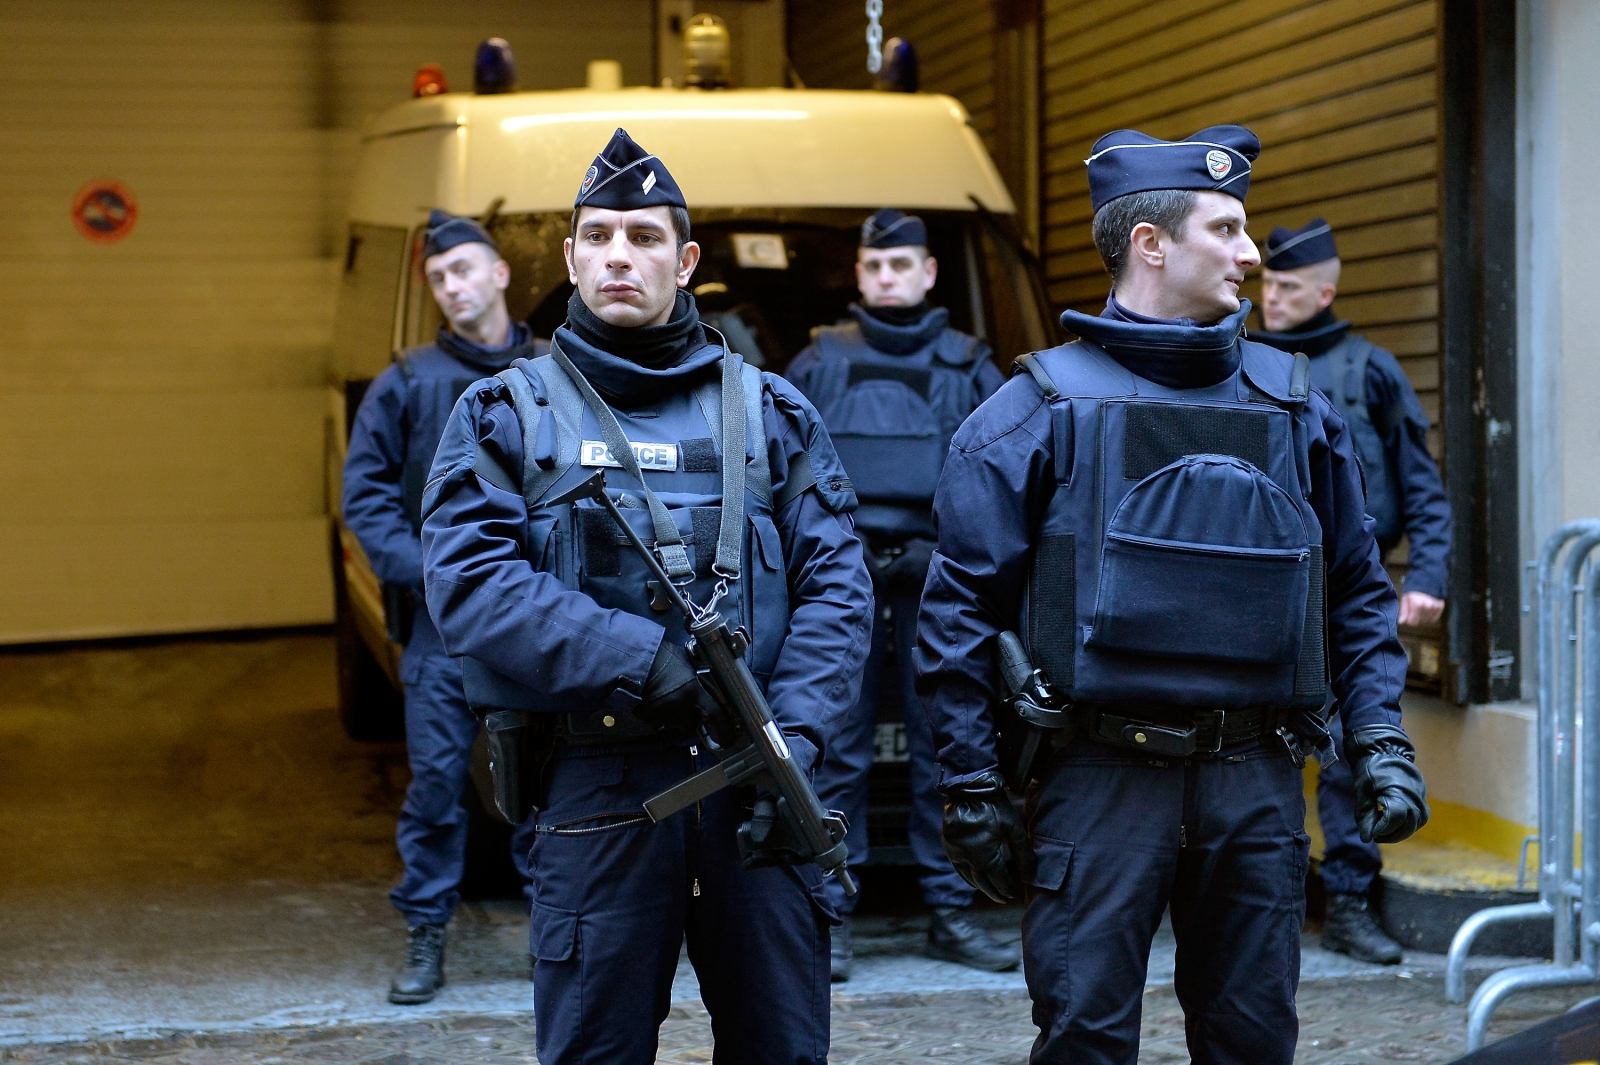 Anti-terror police in Paris